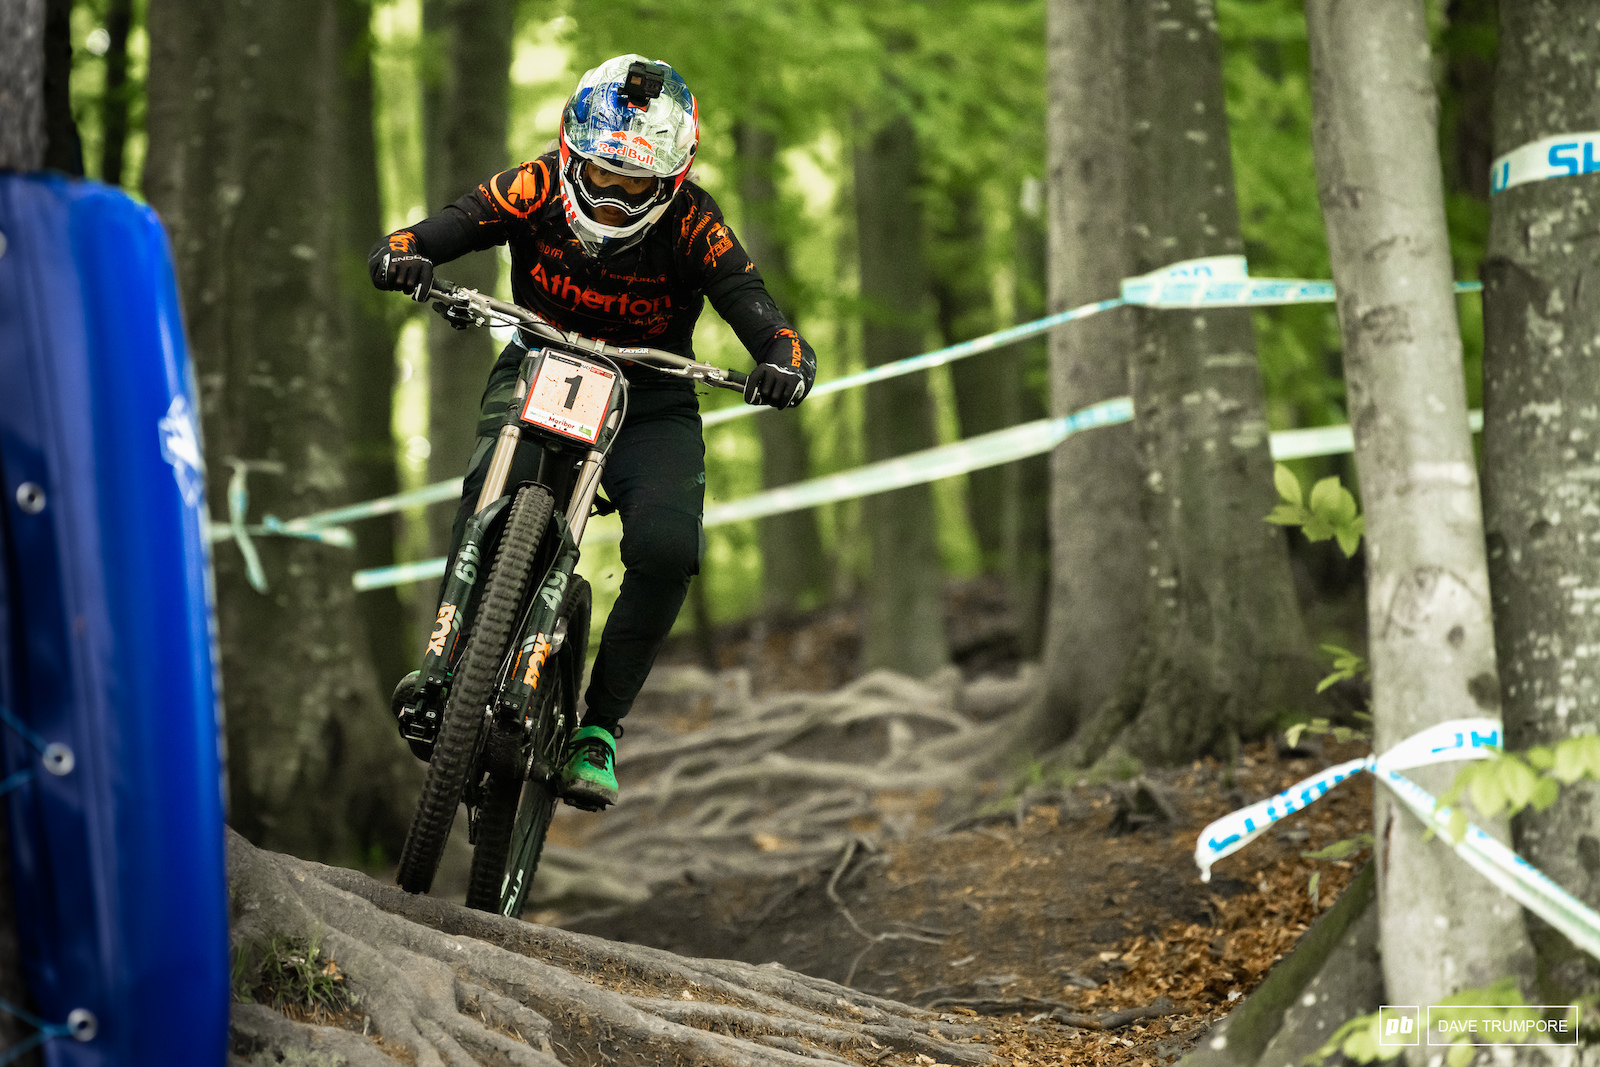 So close but just off the win today for Rachel Atherton and her family s new Atherton DH bike.